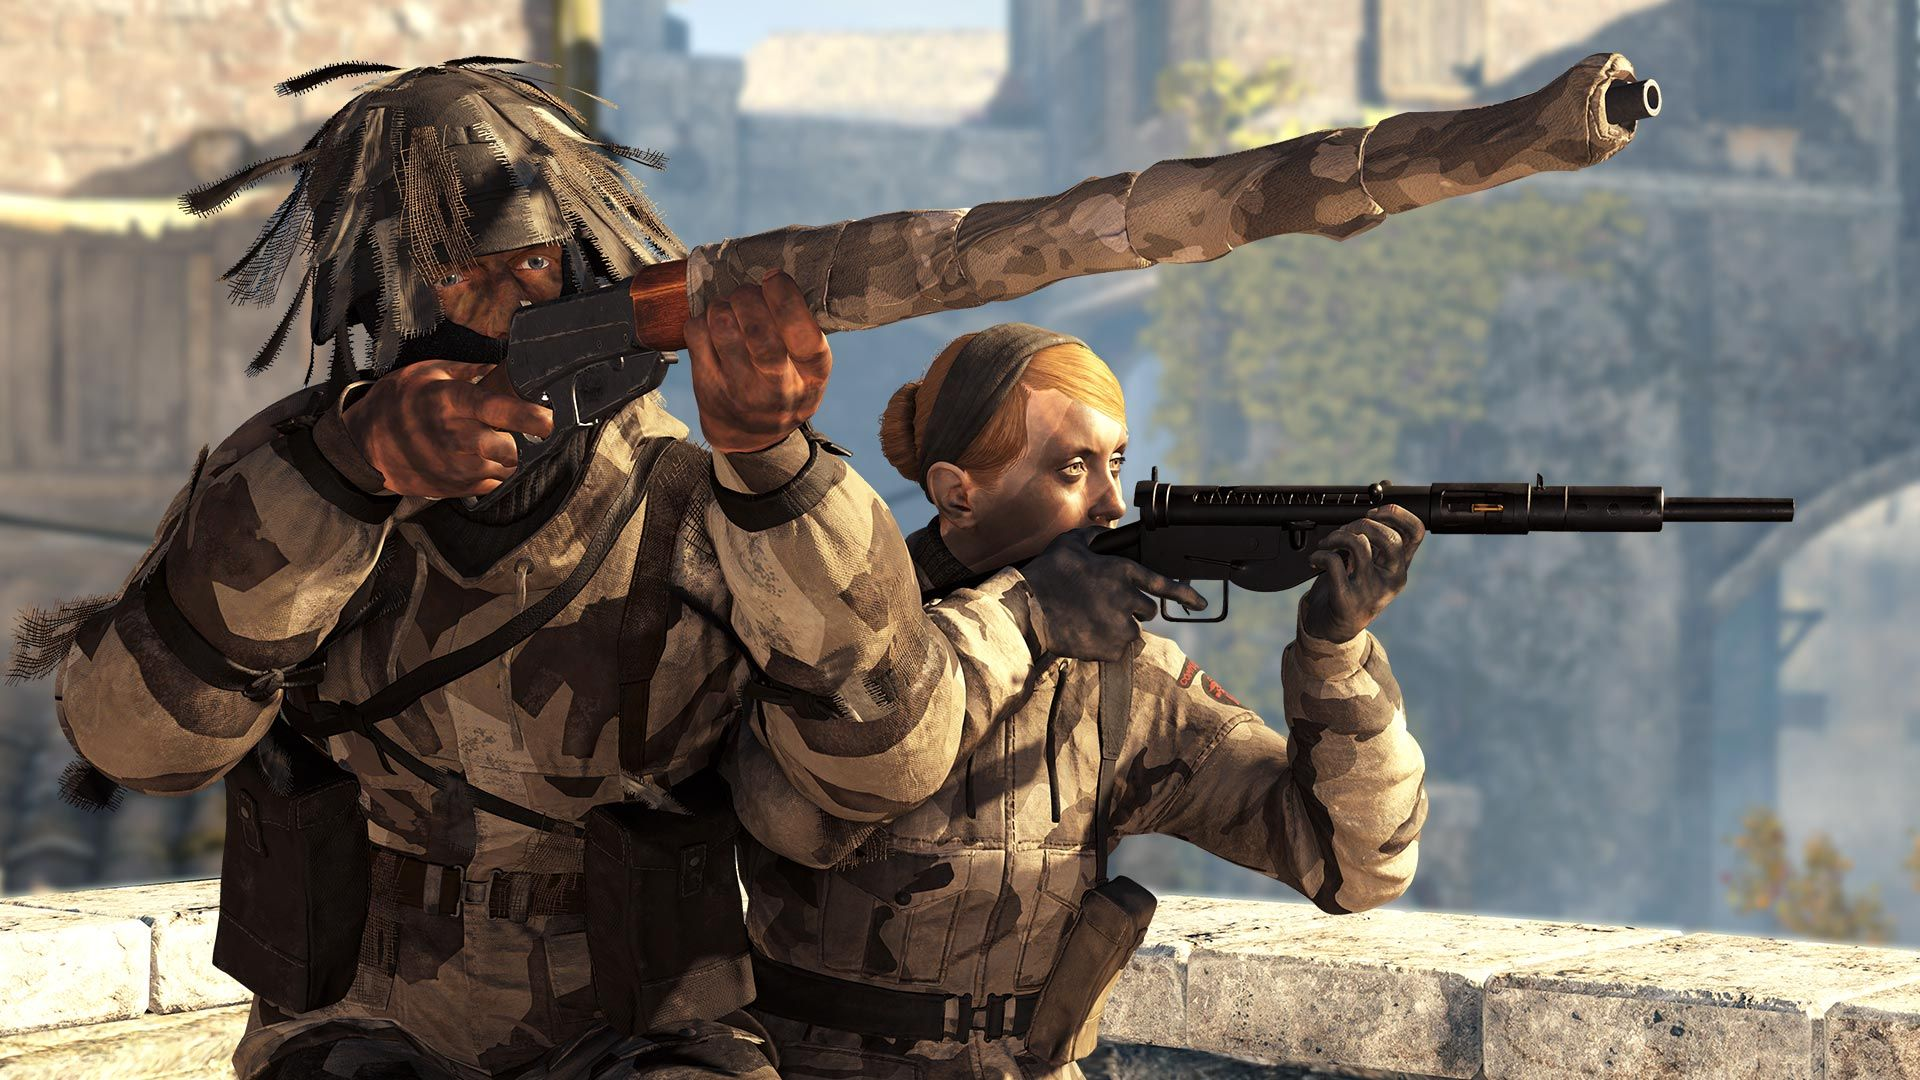 Sniper Elite 4 Guide for Beginners | GAMERS DECIDE